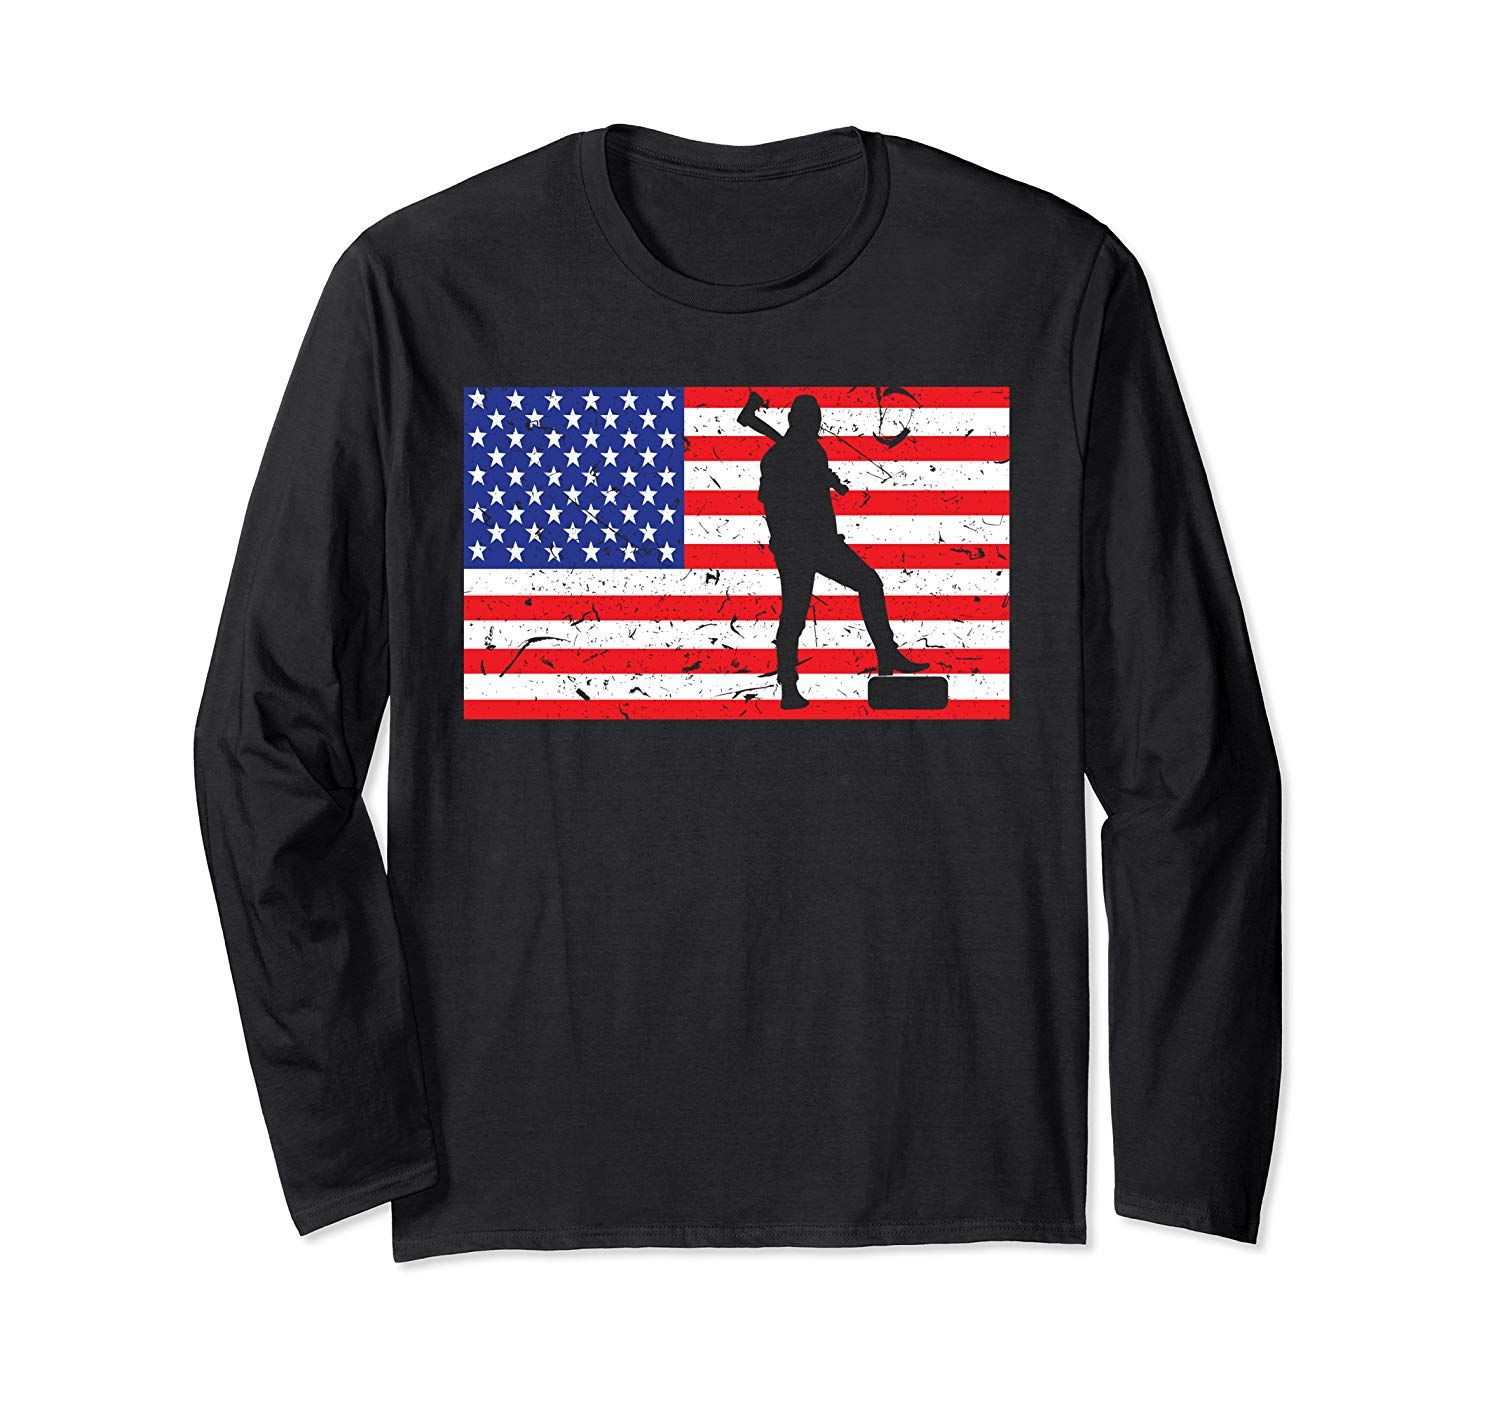 Distressed Lumberjack USA American Flag  Vintage Woodworker Long Sleeve T-Shirt #americanflagart